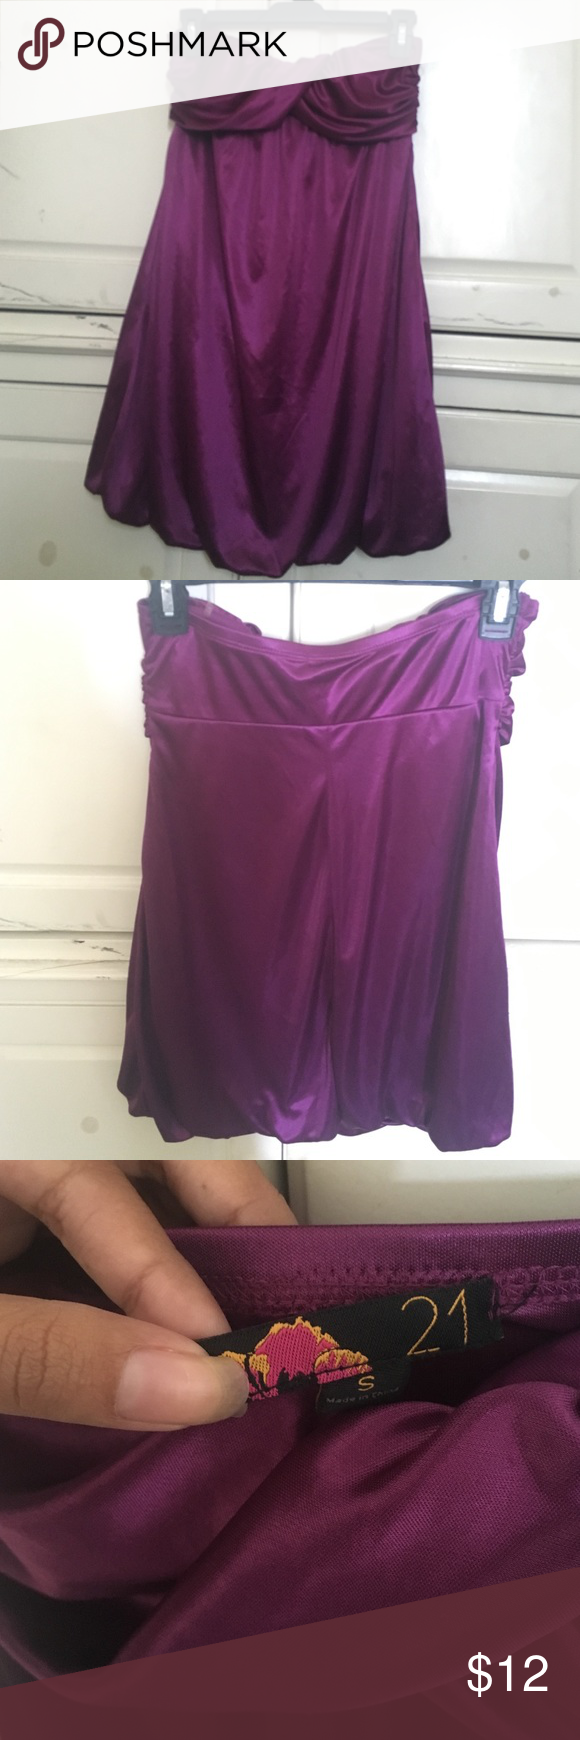 Vibrant Purple dress🌟 Such a pretty dress, you can wear it with heels, flats, or sandals and it will look great😊 worn but in great condition, only thing is the forever 21 tag is ripping off as shown in last photo. Feels like silk 😀, it's 100% polyester. Forever 21 Dresses Strapless